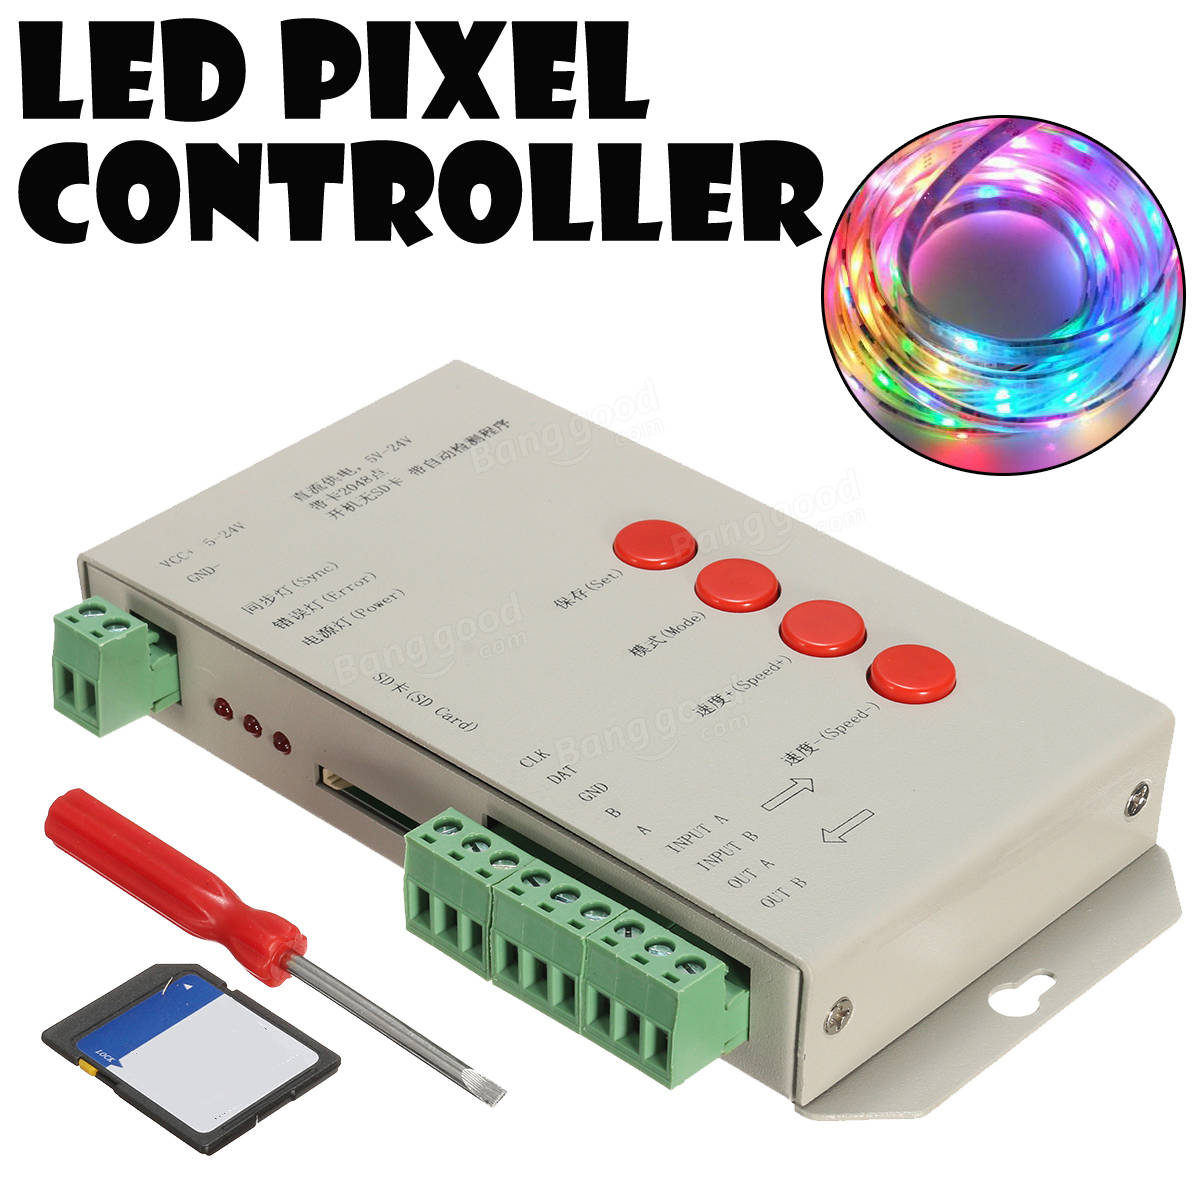 Controller Banda Led Digitala T S Penru Banda Led Magic Led Dream Led Ic Si Ws X likewise Pixel Led Controller T S   Duino Lk X in addition Hot Selling Max Pixels Programmable Sd Card Led Controller T S furthermore Hqdefault also Wholesale T S Led Controller Edit Software. on t 1000s sd card led pixel controller